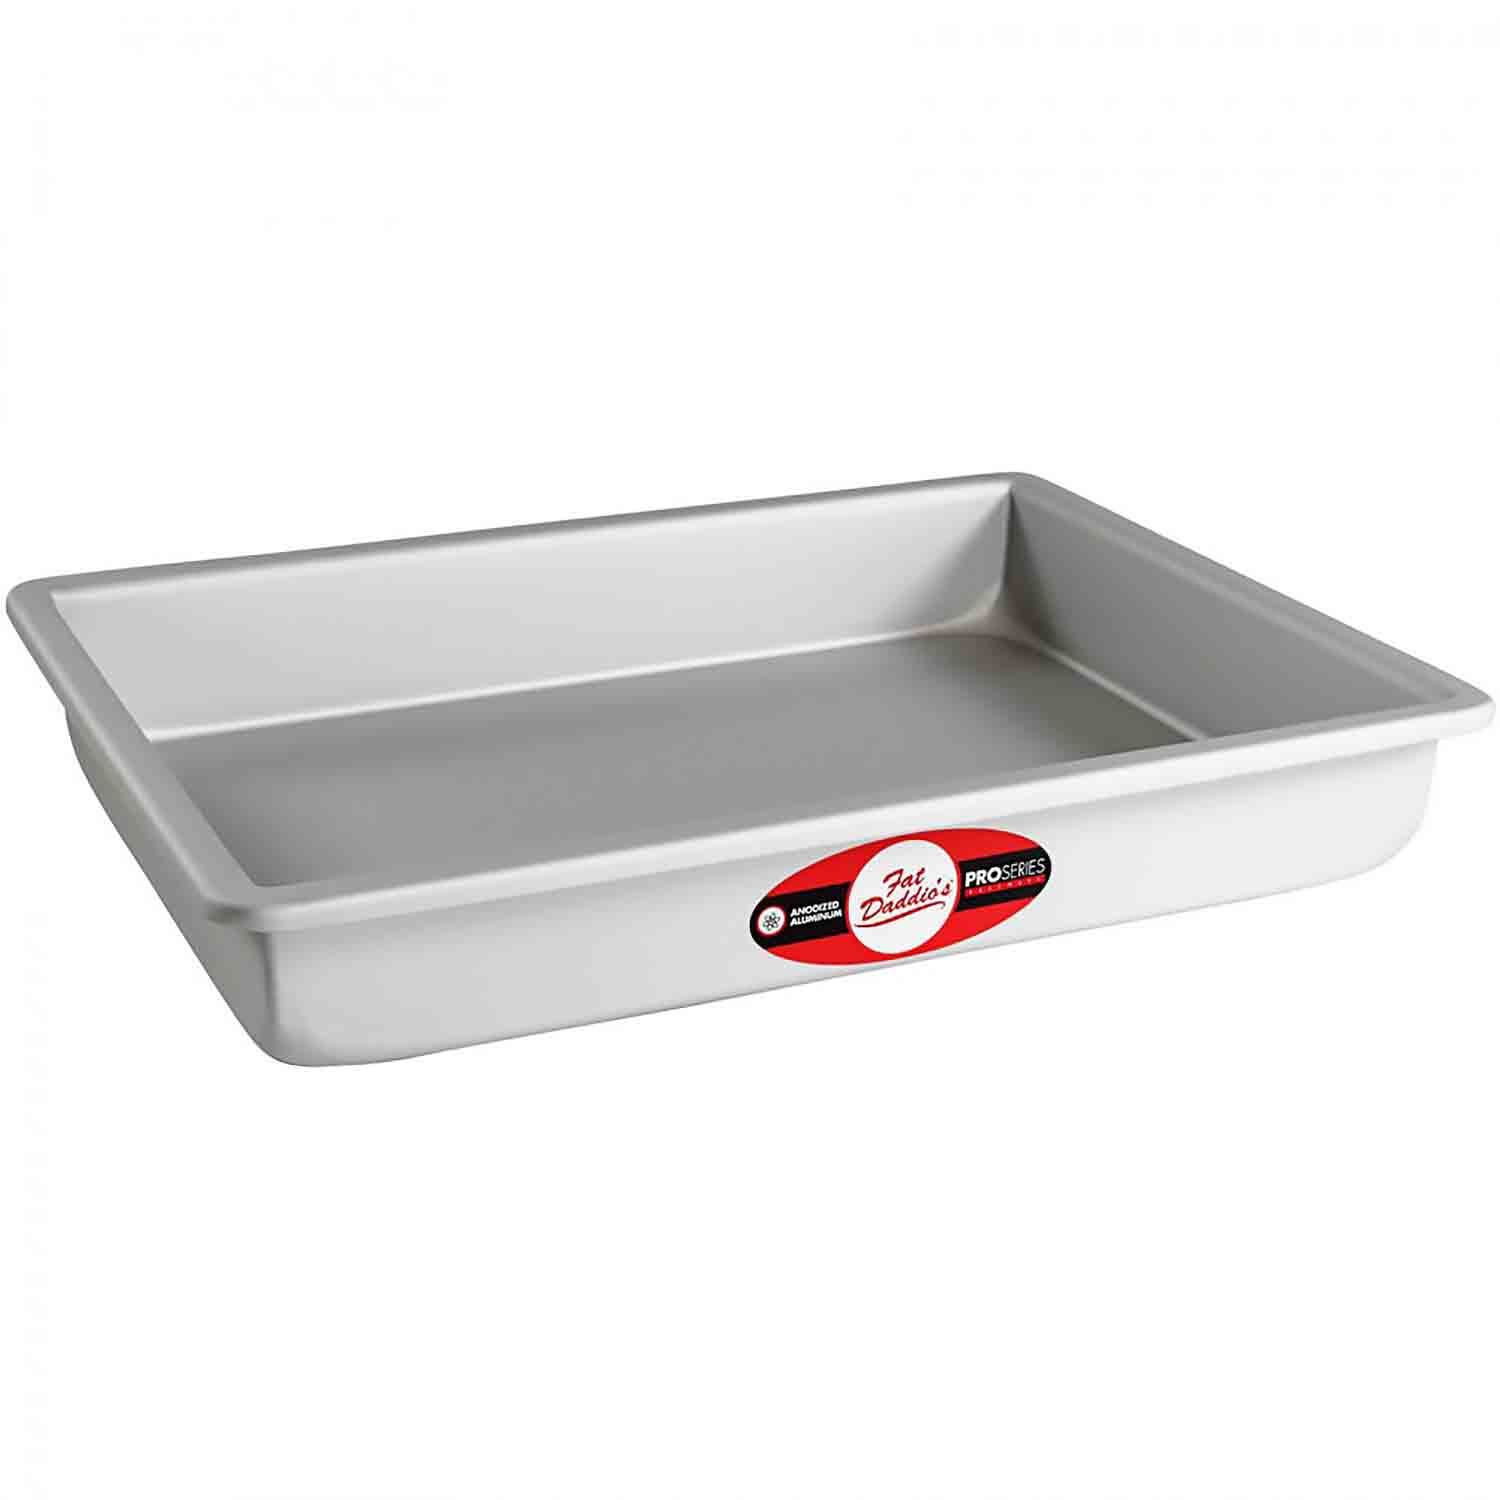 "9"" x 13"" x 2"" Quarter Sheet Cake Pan"